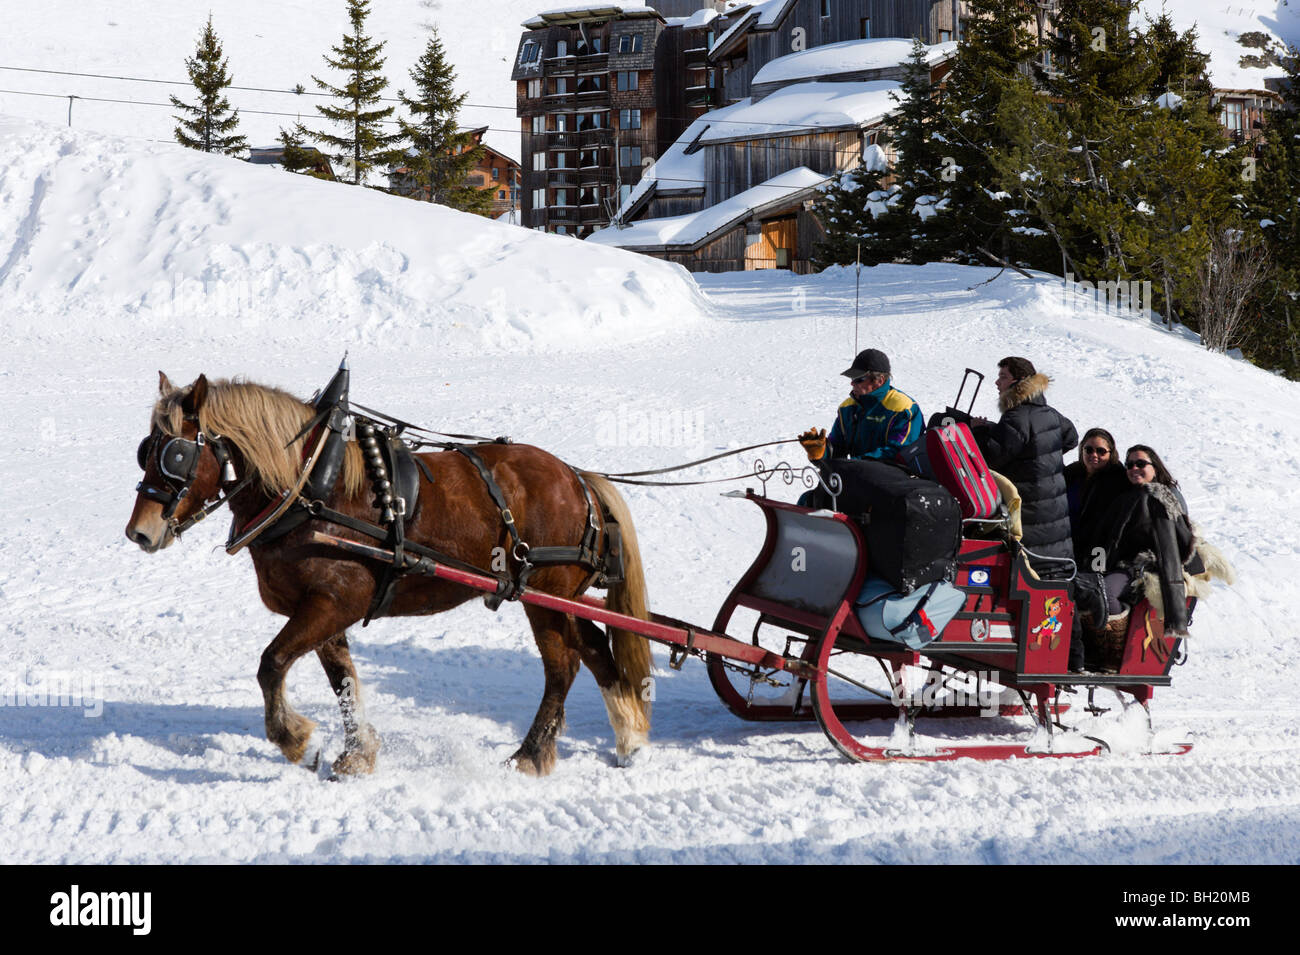 Horse and Sled used to transport luggage around the traffic free resort, Avoriaz, Haute Savoie, France - Stock Image